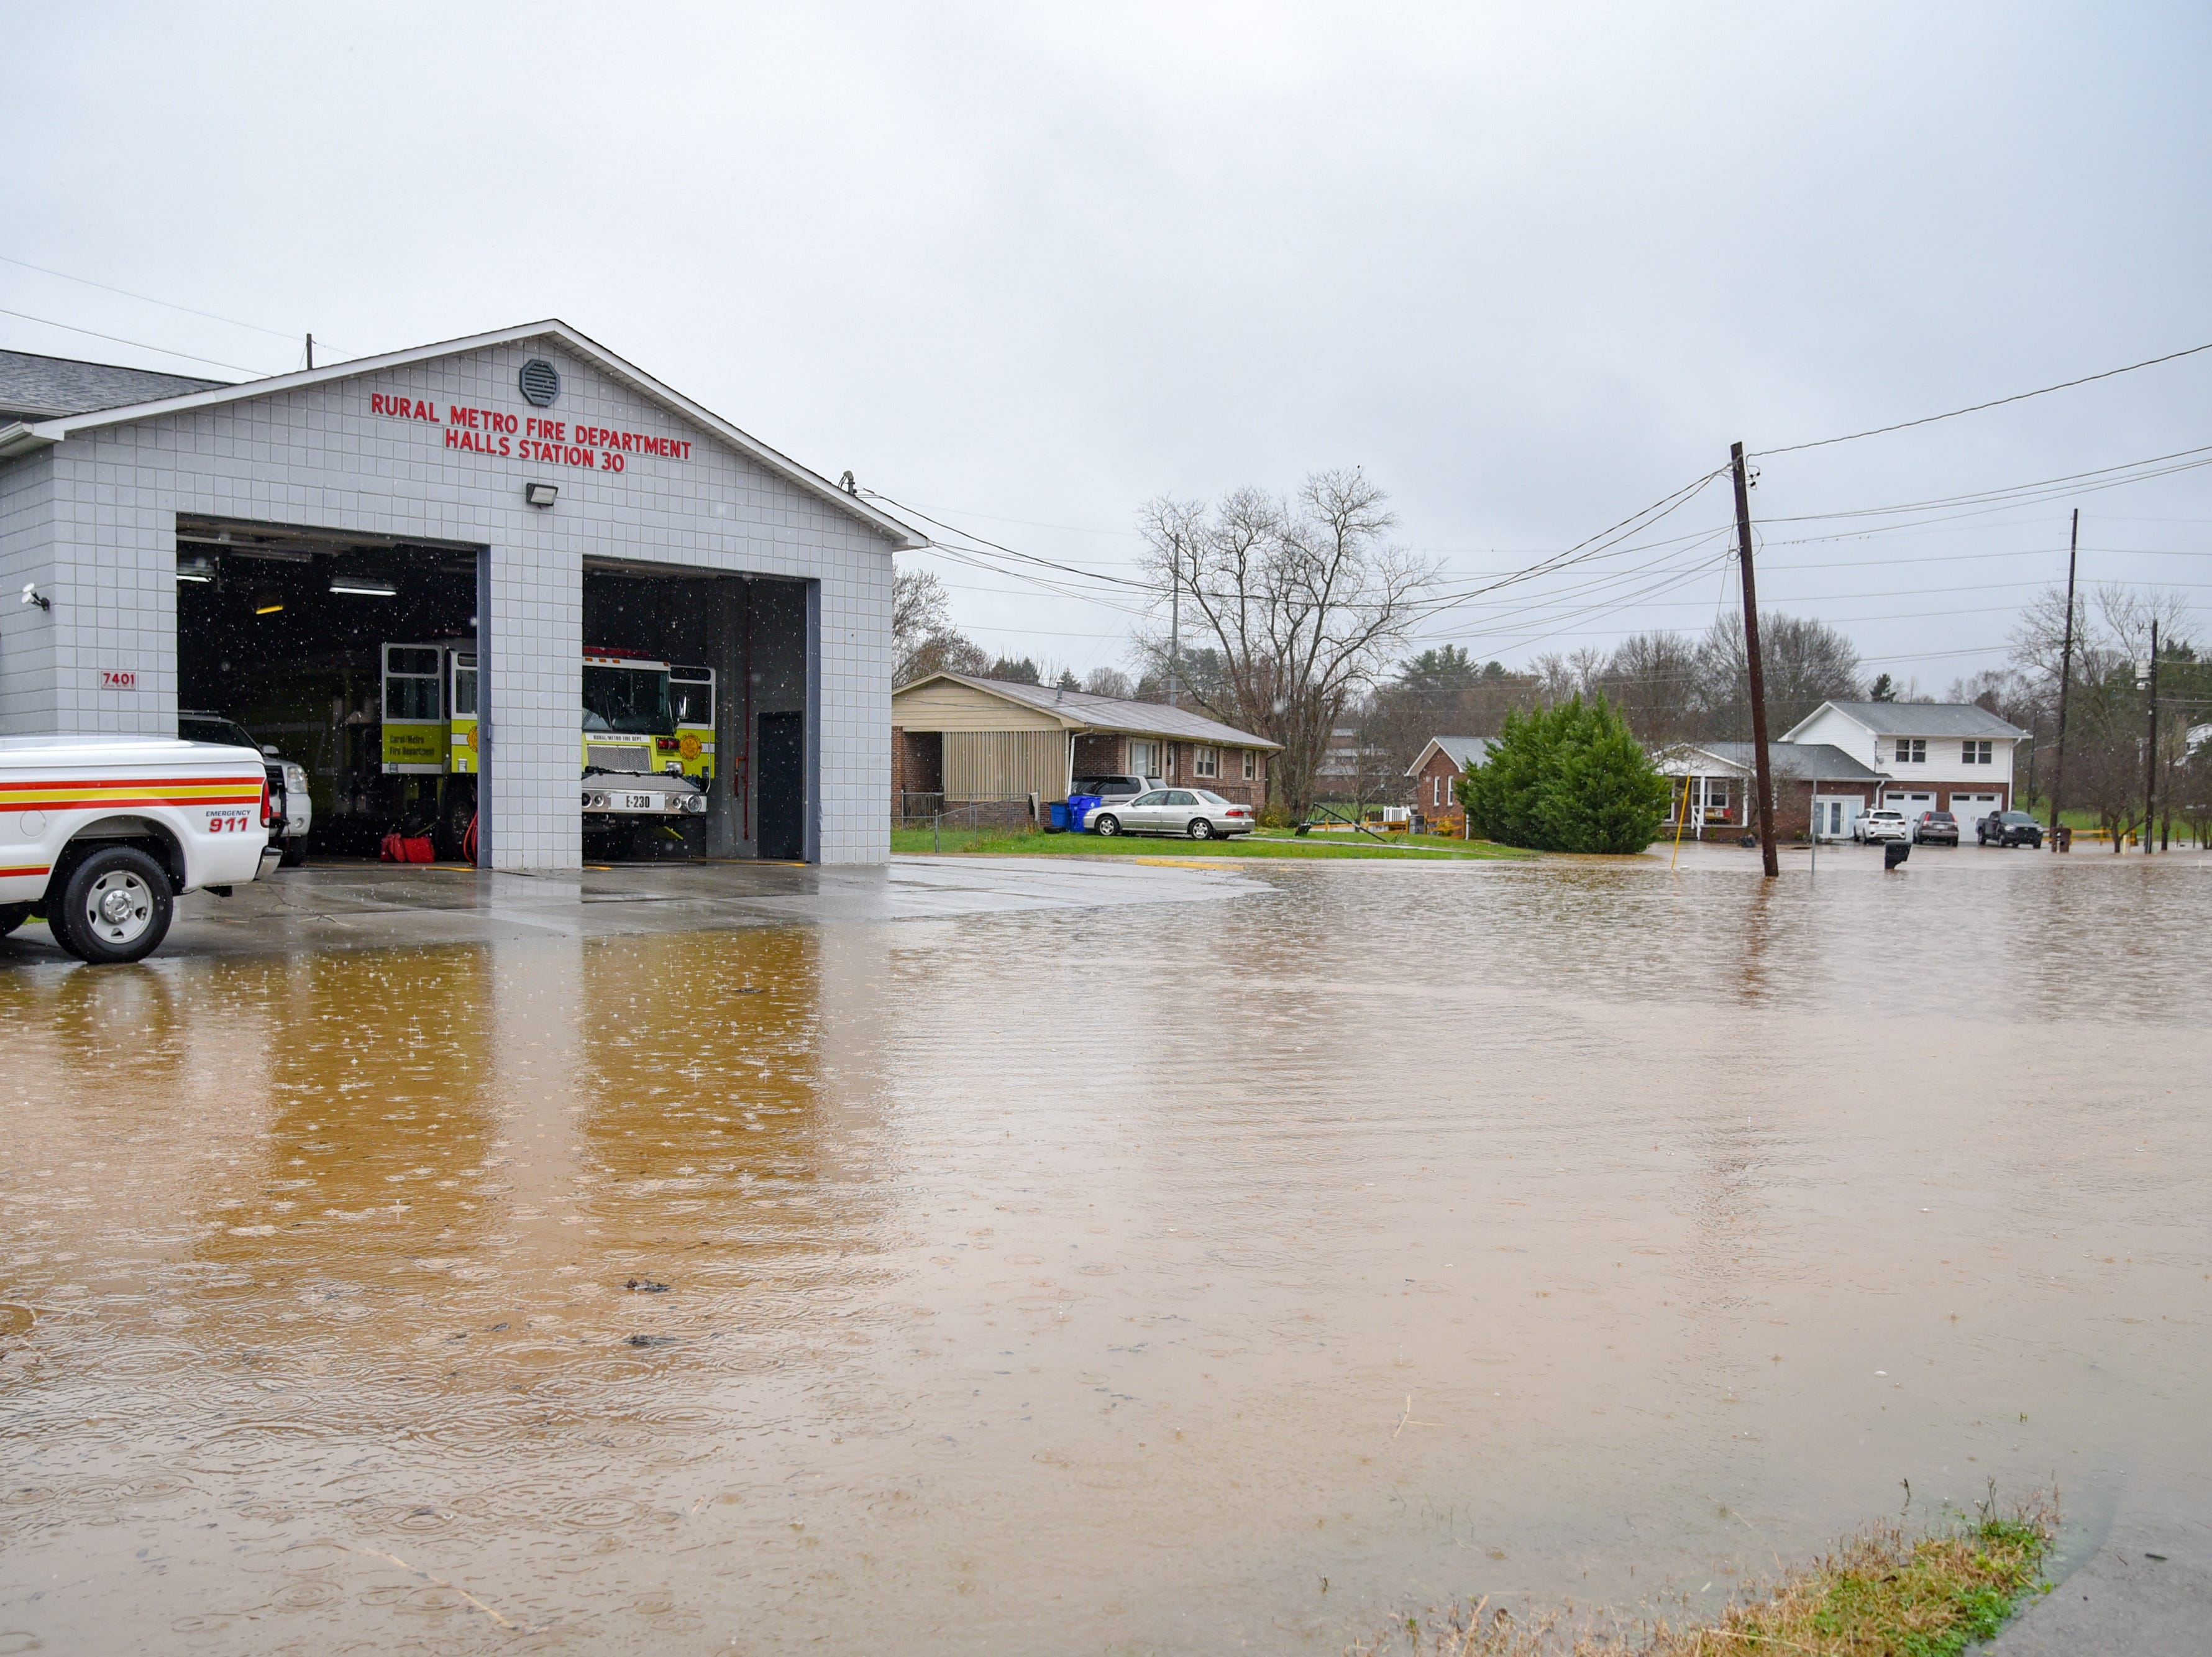 Flood waters approach Rural Metro Station 30 in Halls Saturday Feb. 23, 2019. The Knoxville area could see between 2 and 3 inches of rain through the weekend.